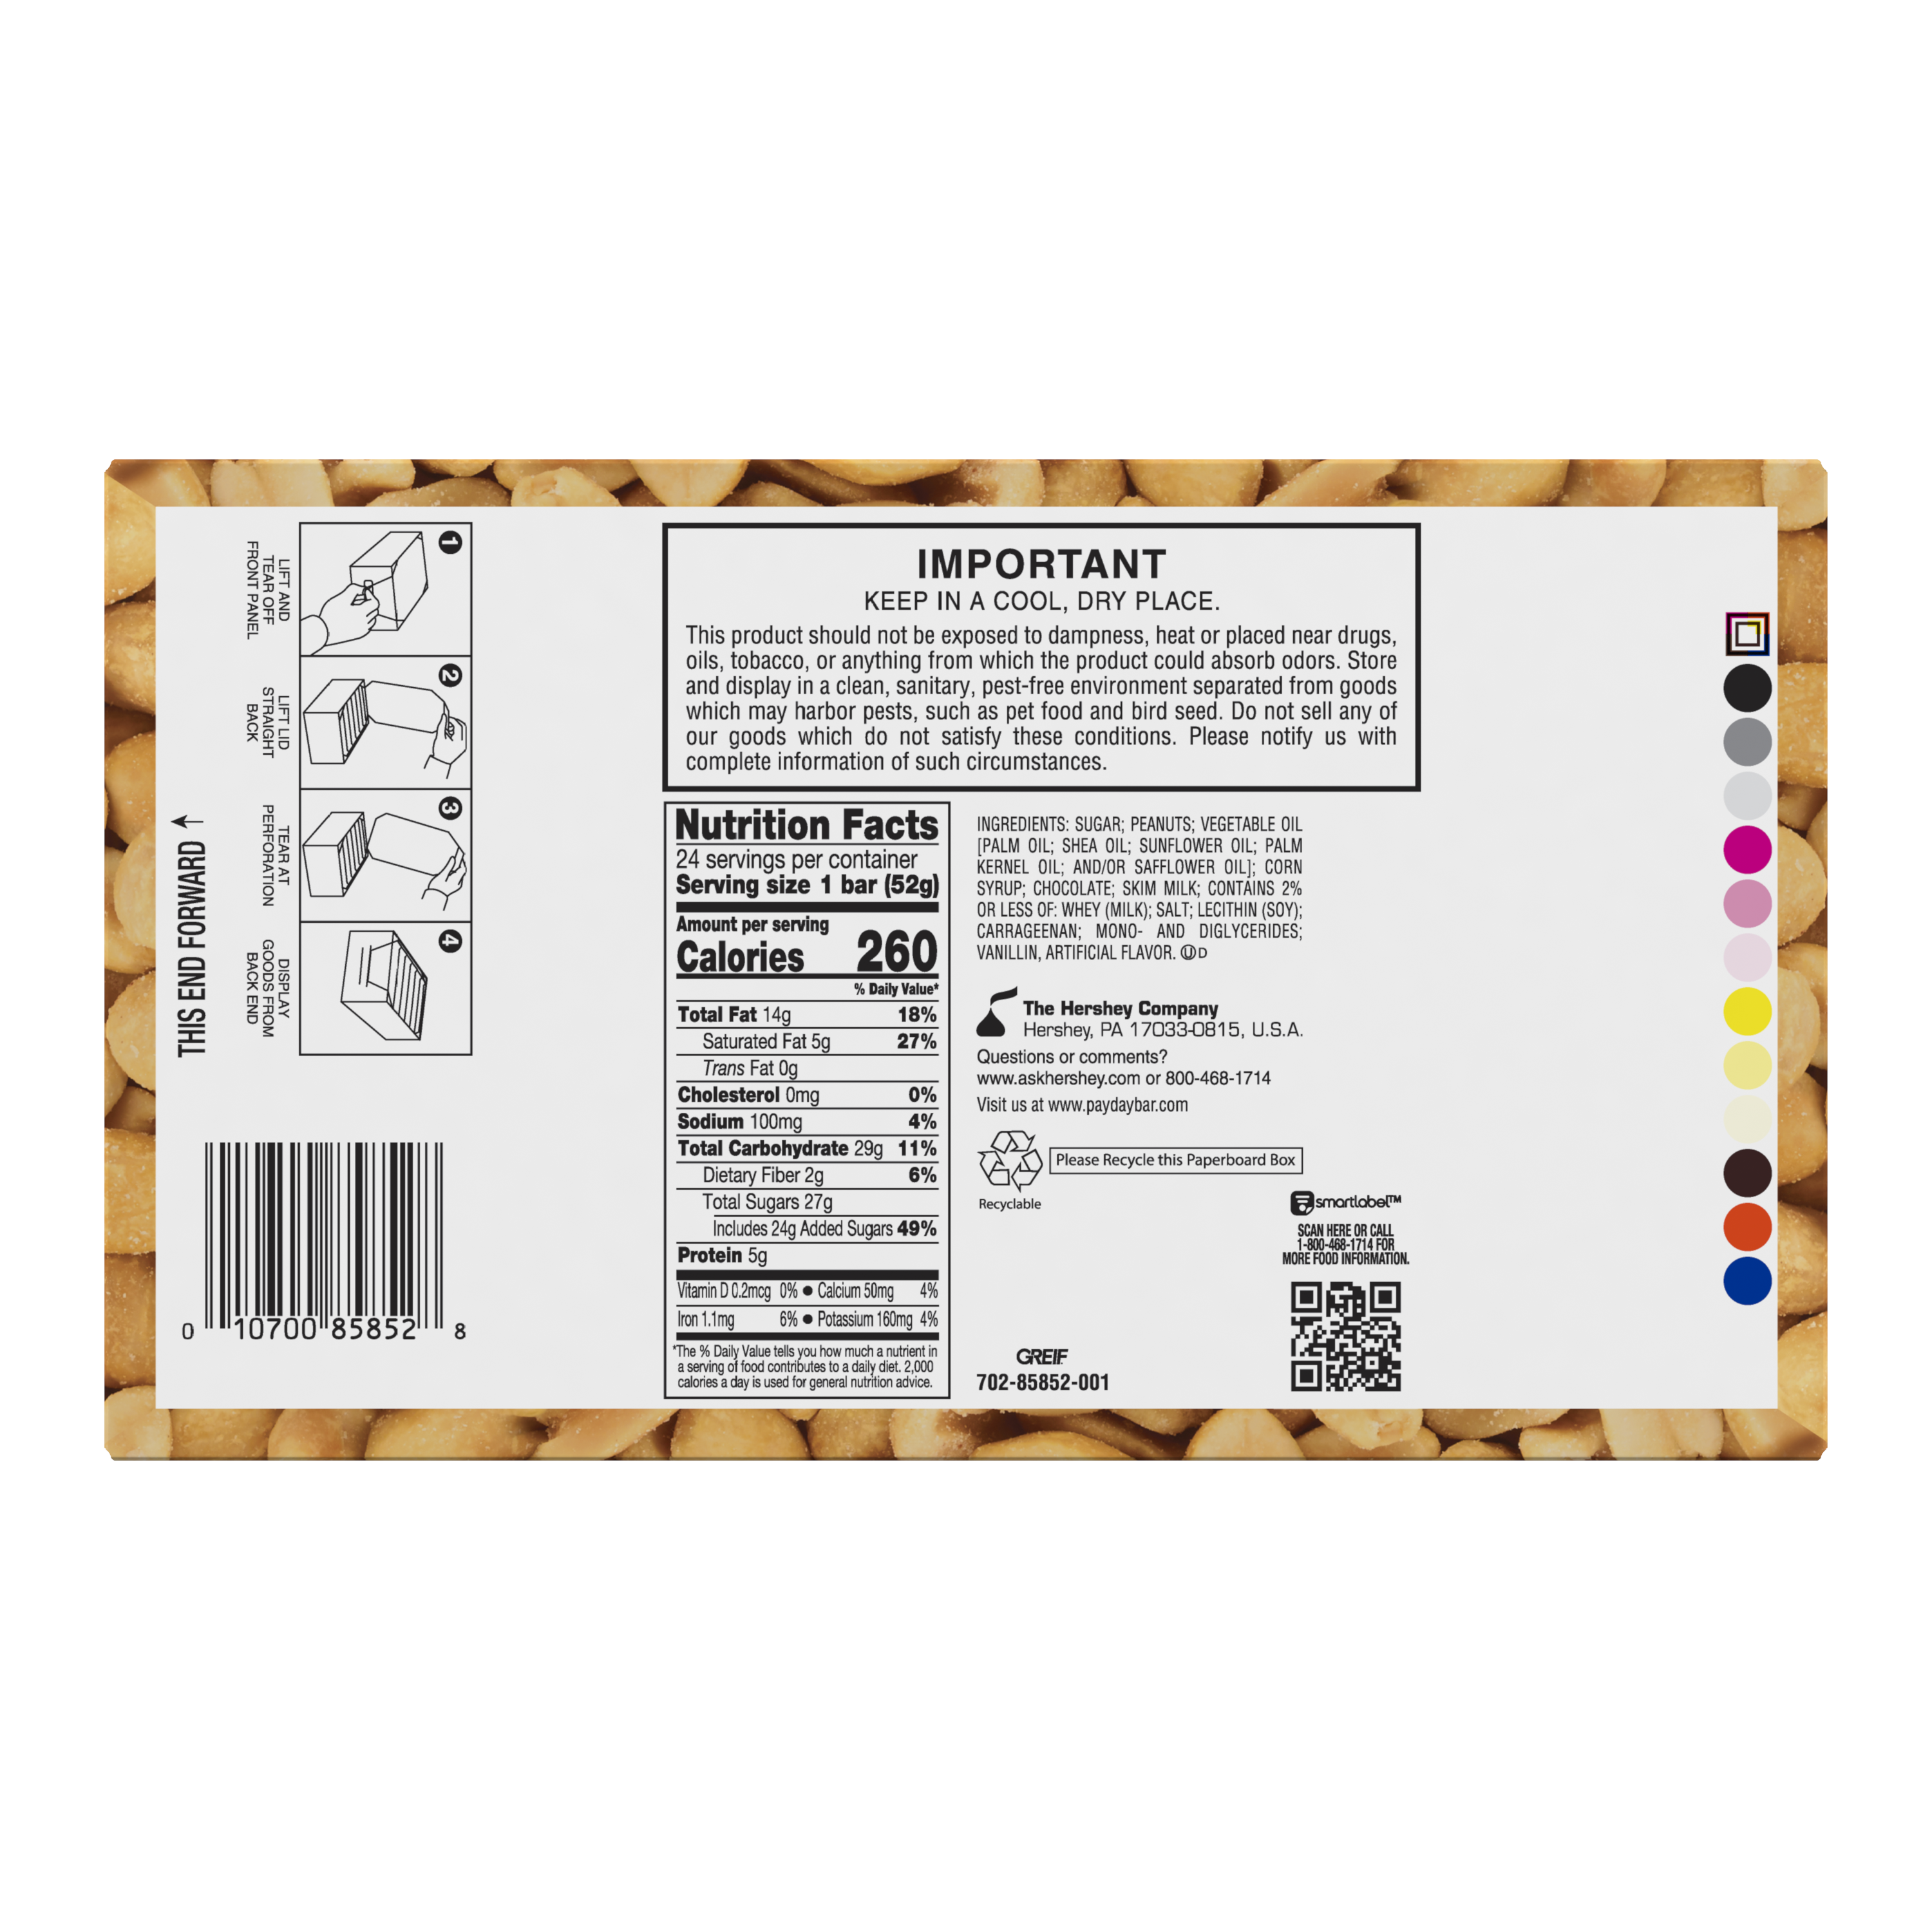 PAYDAY Chocolatey Covered Peanut and Caramel Candy Bars, 44.4 oz box, 24 pack - Bottom of Package